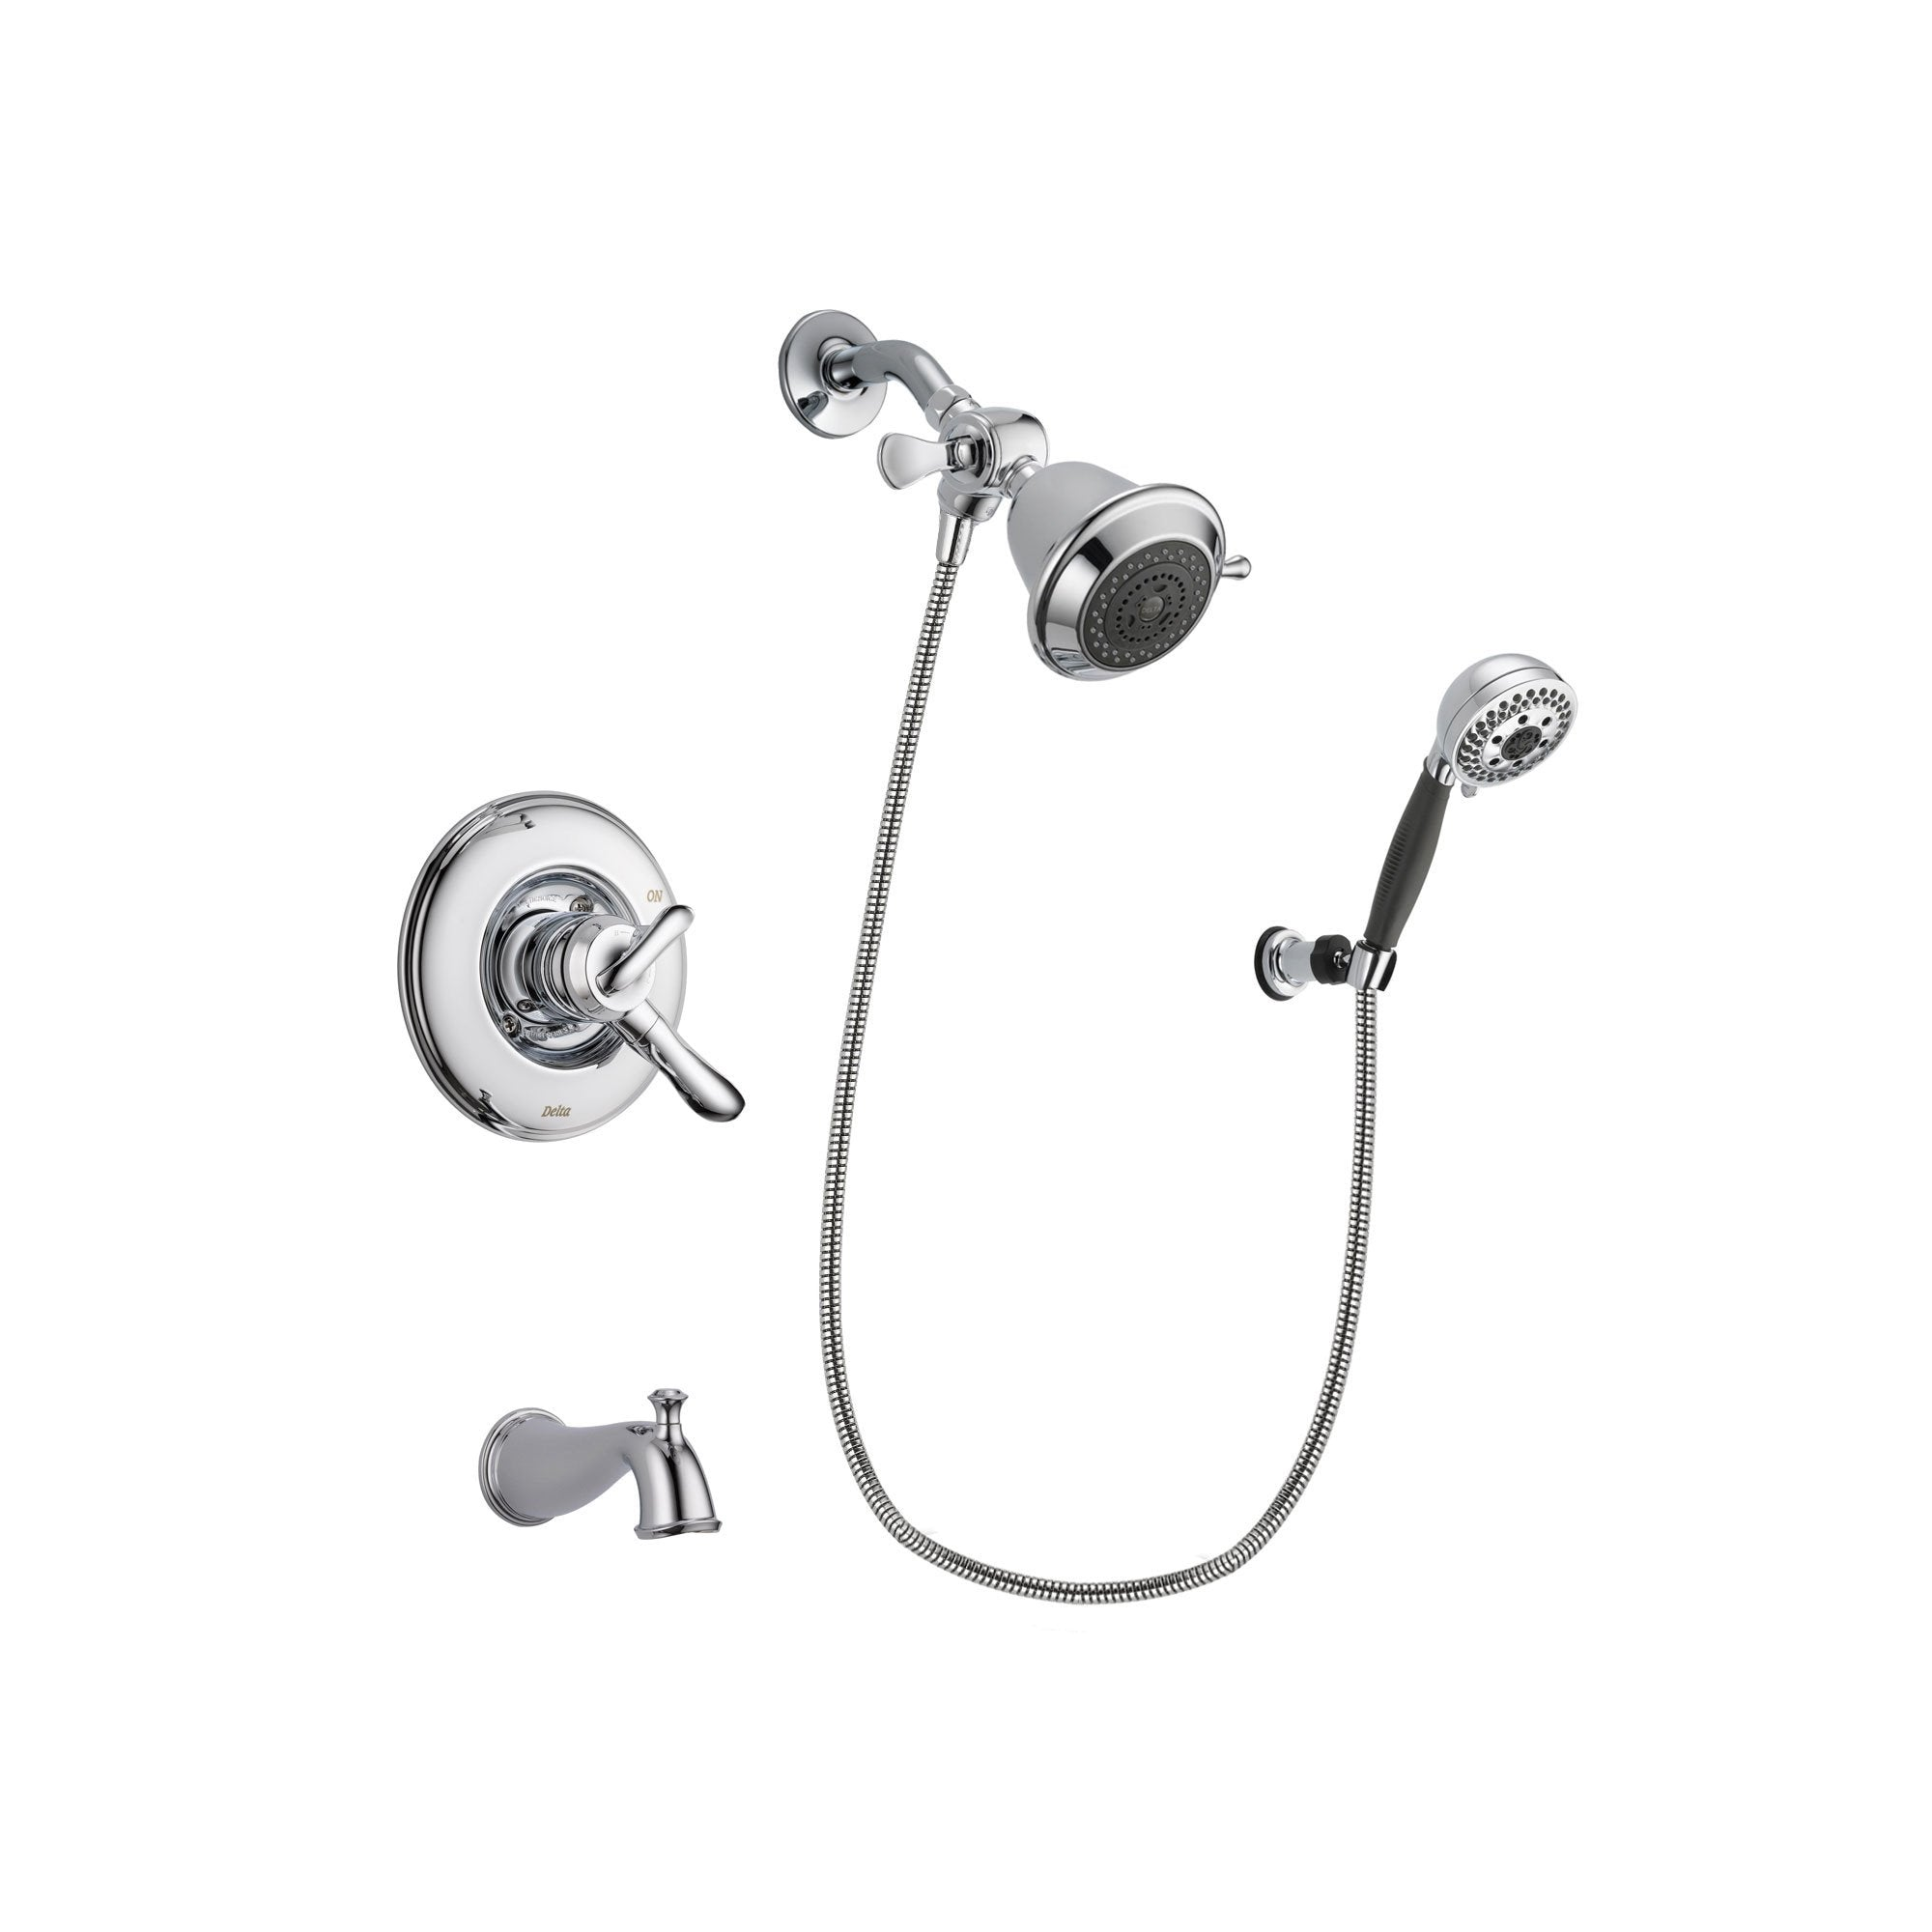 Delta Linden Chrome Tub and Shower Faucet System with Hand Shower DSP1135V